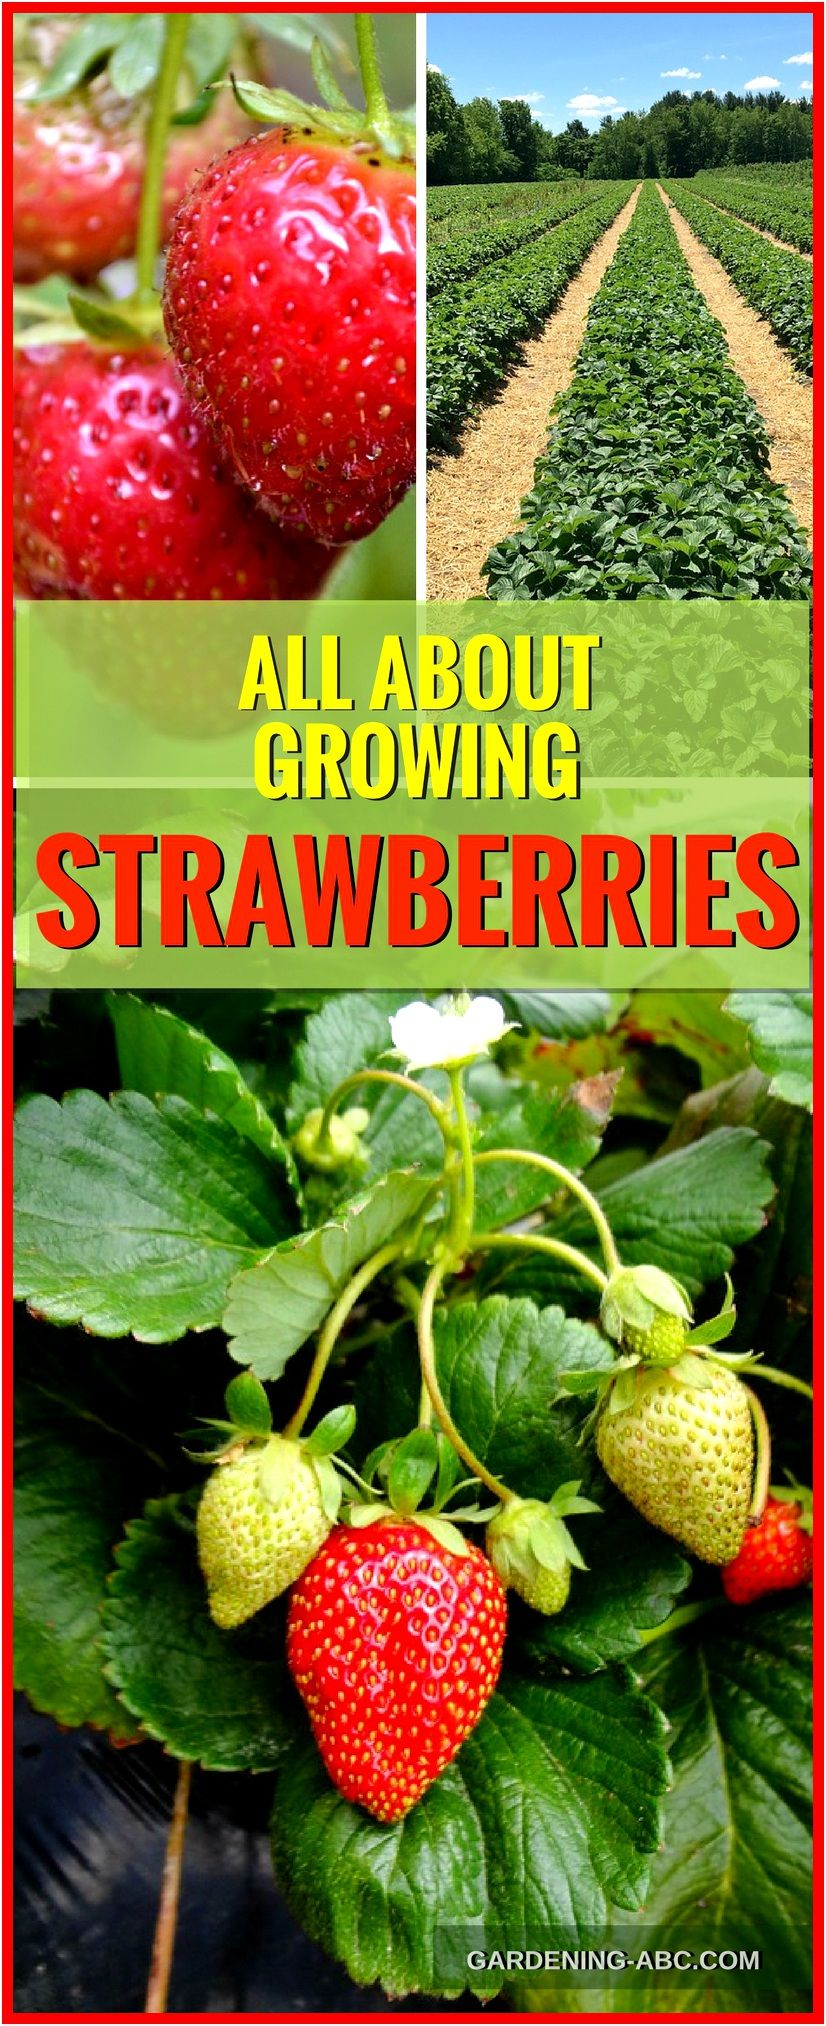 How To Grow Strawberry Plants: Strawberry Growing In A Nutshell